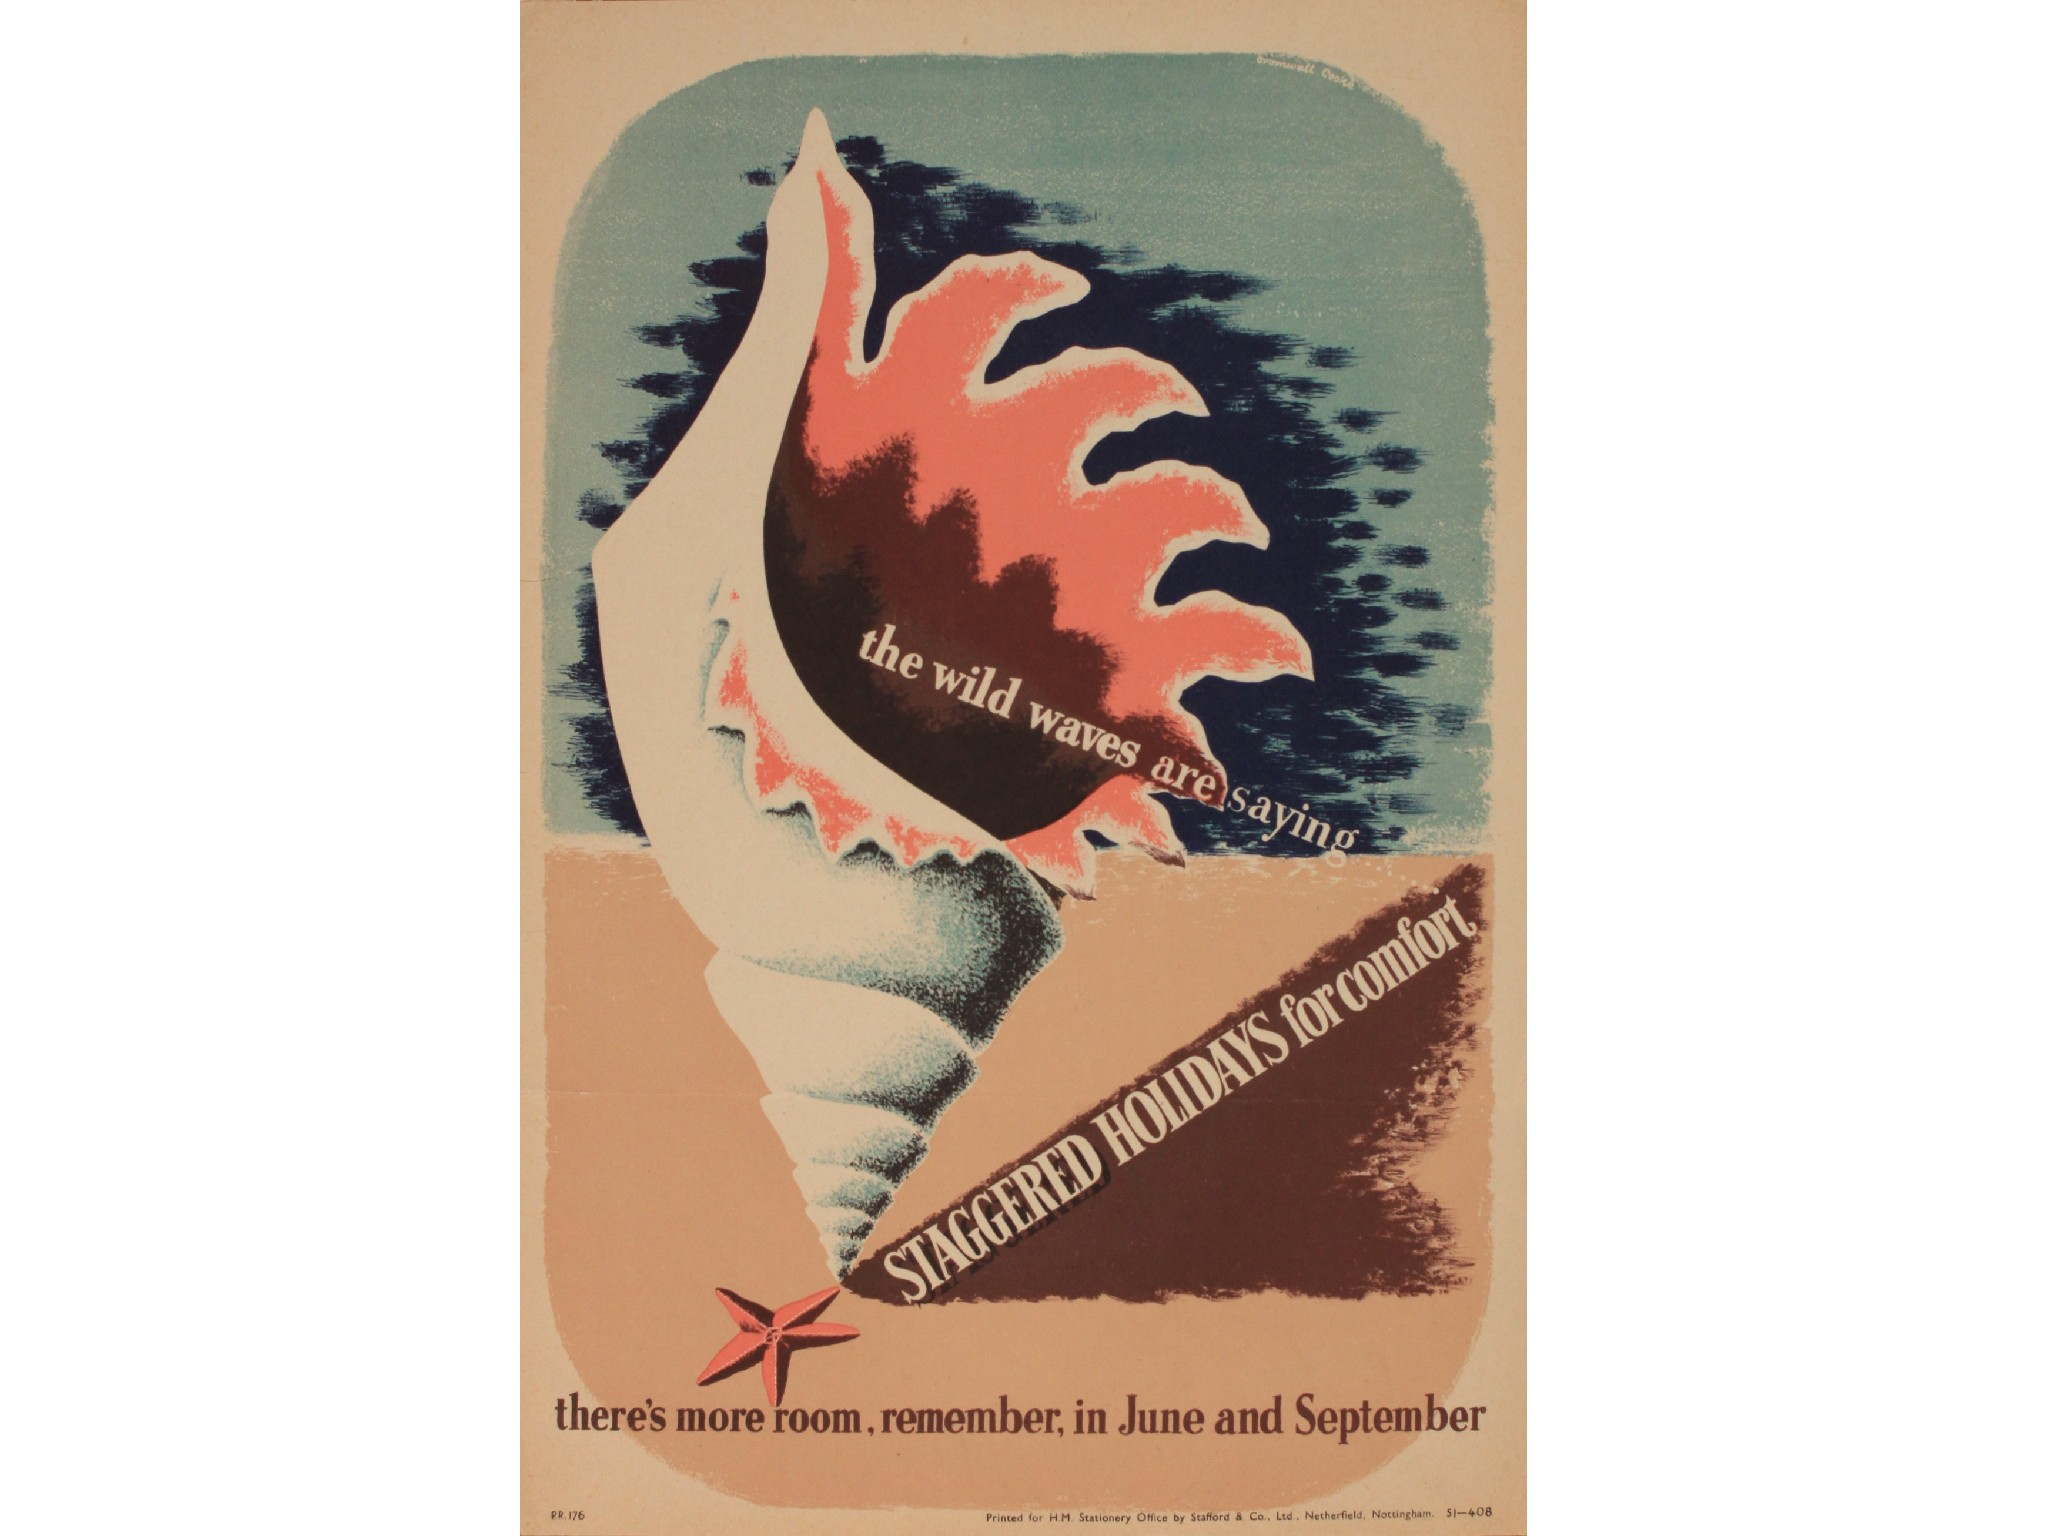 Auktion - Vintage Poster Auction on Friday 14th December